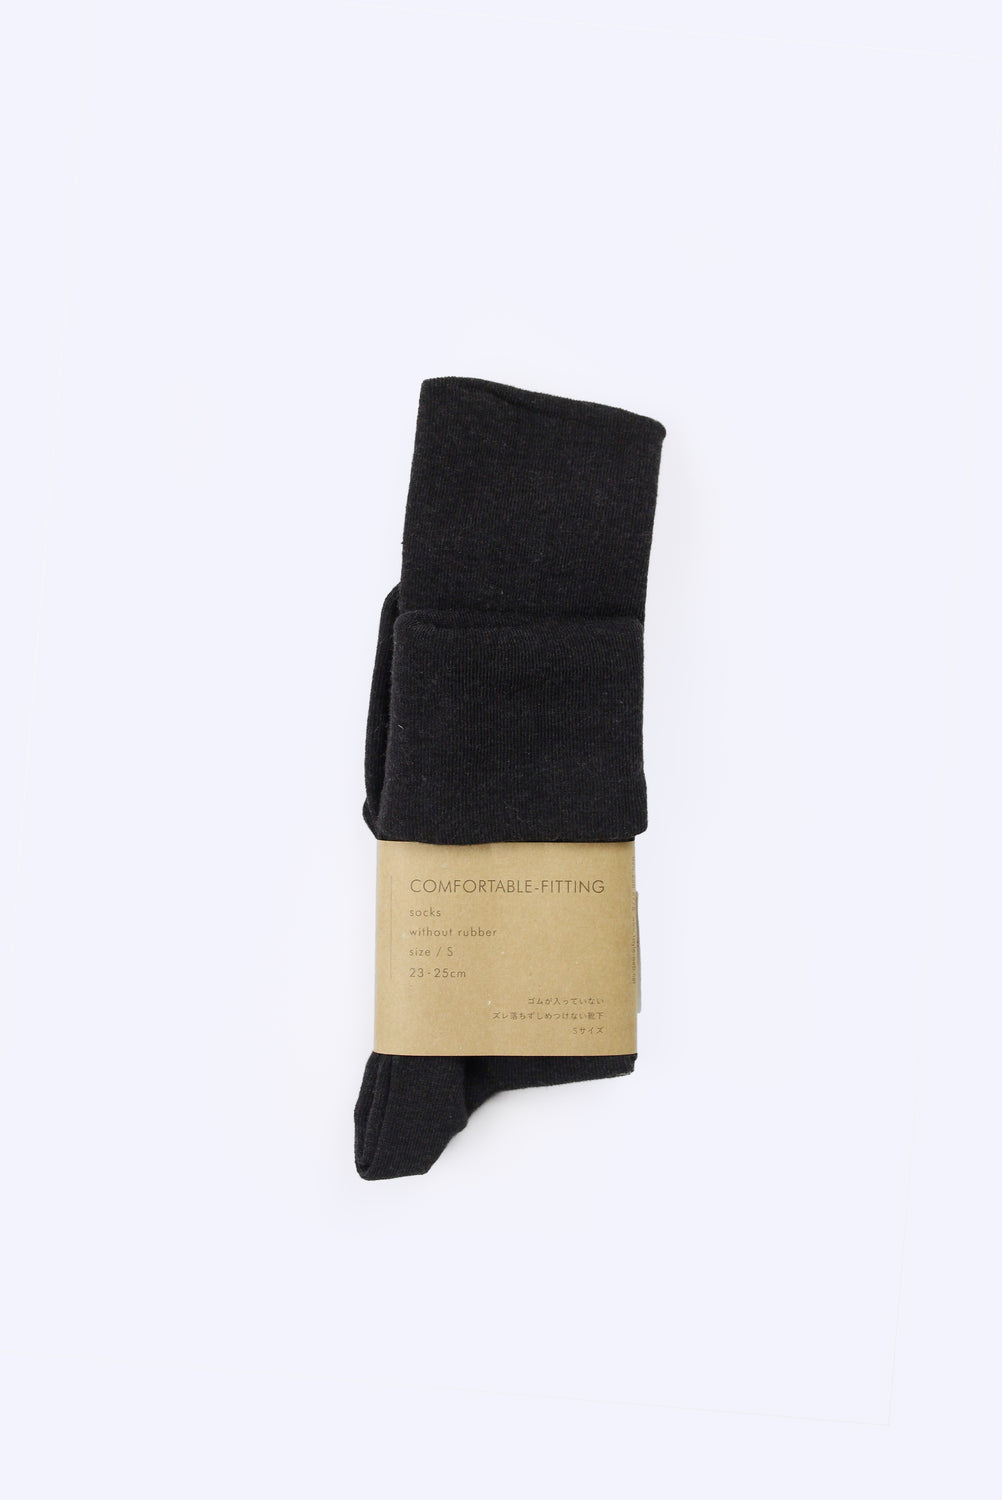 Comfortable-Fitting Socks, Black